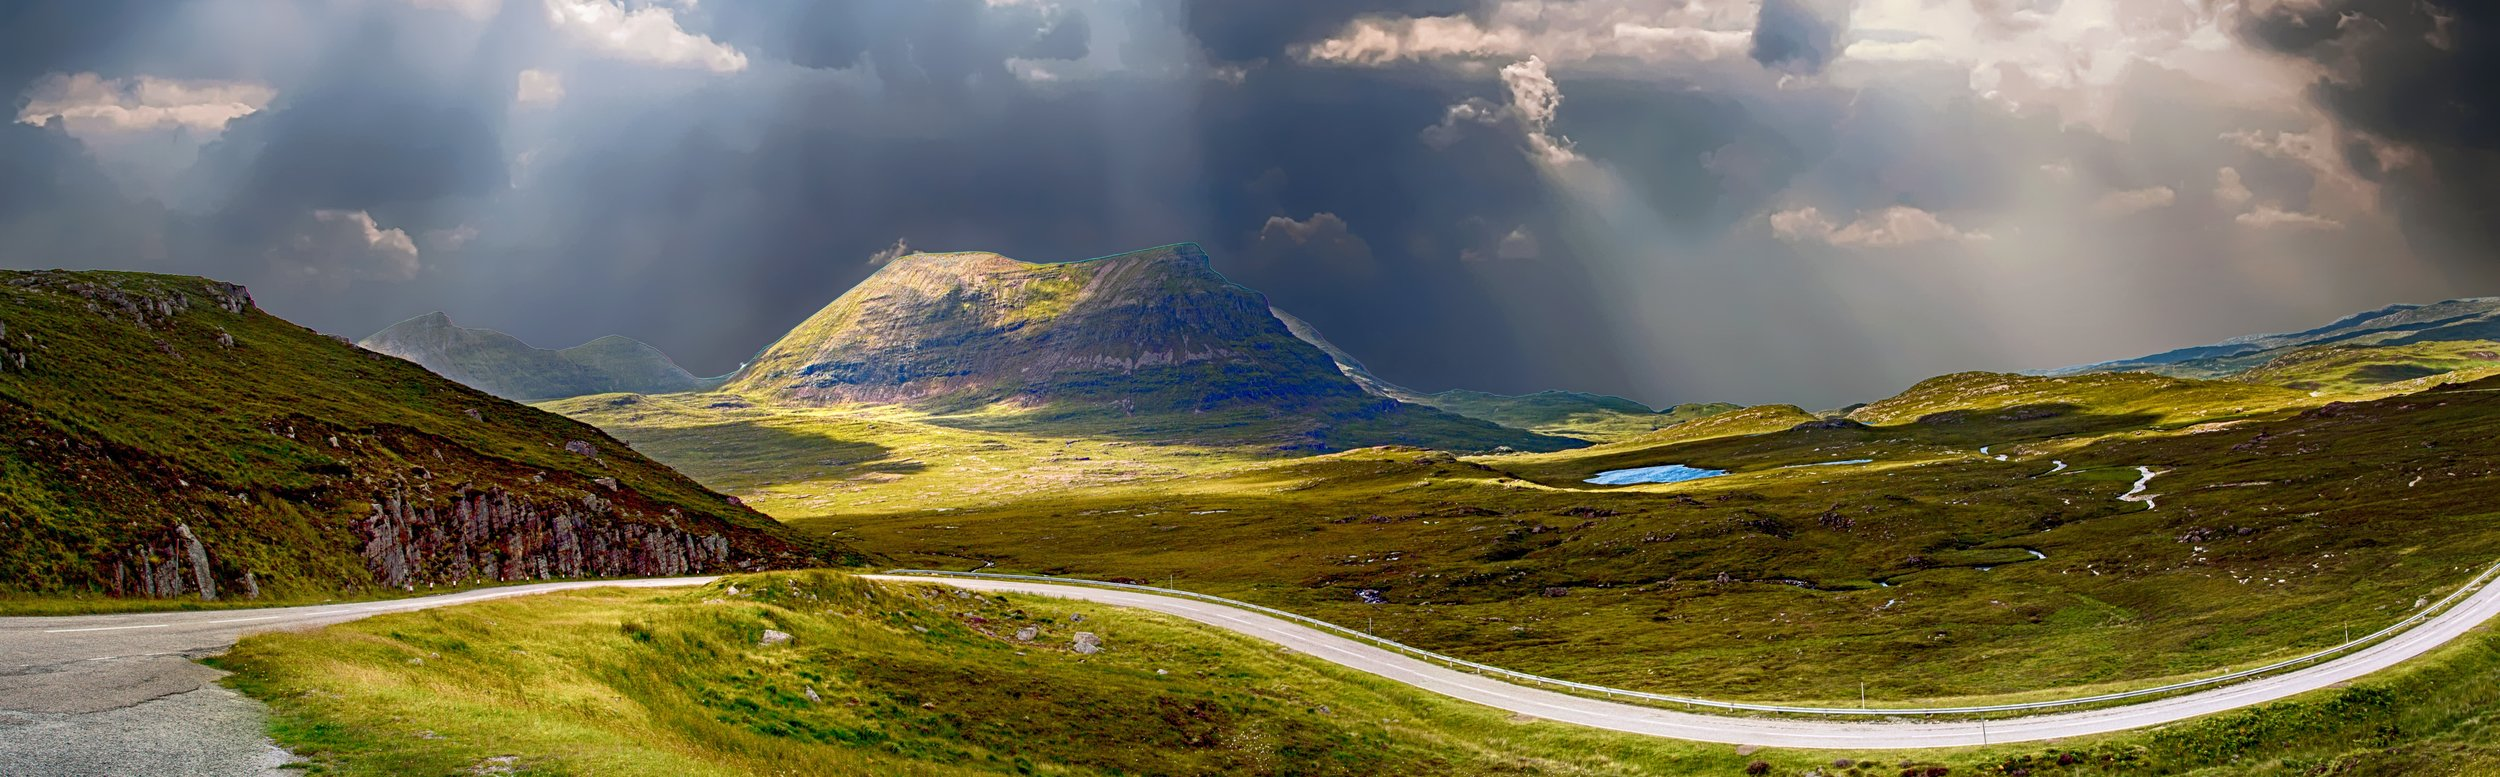 road -clouds-country-countryside-461797.jpg